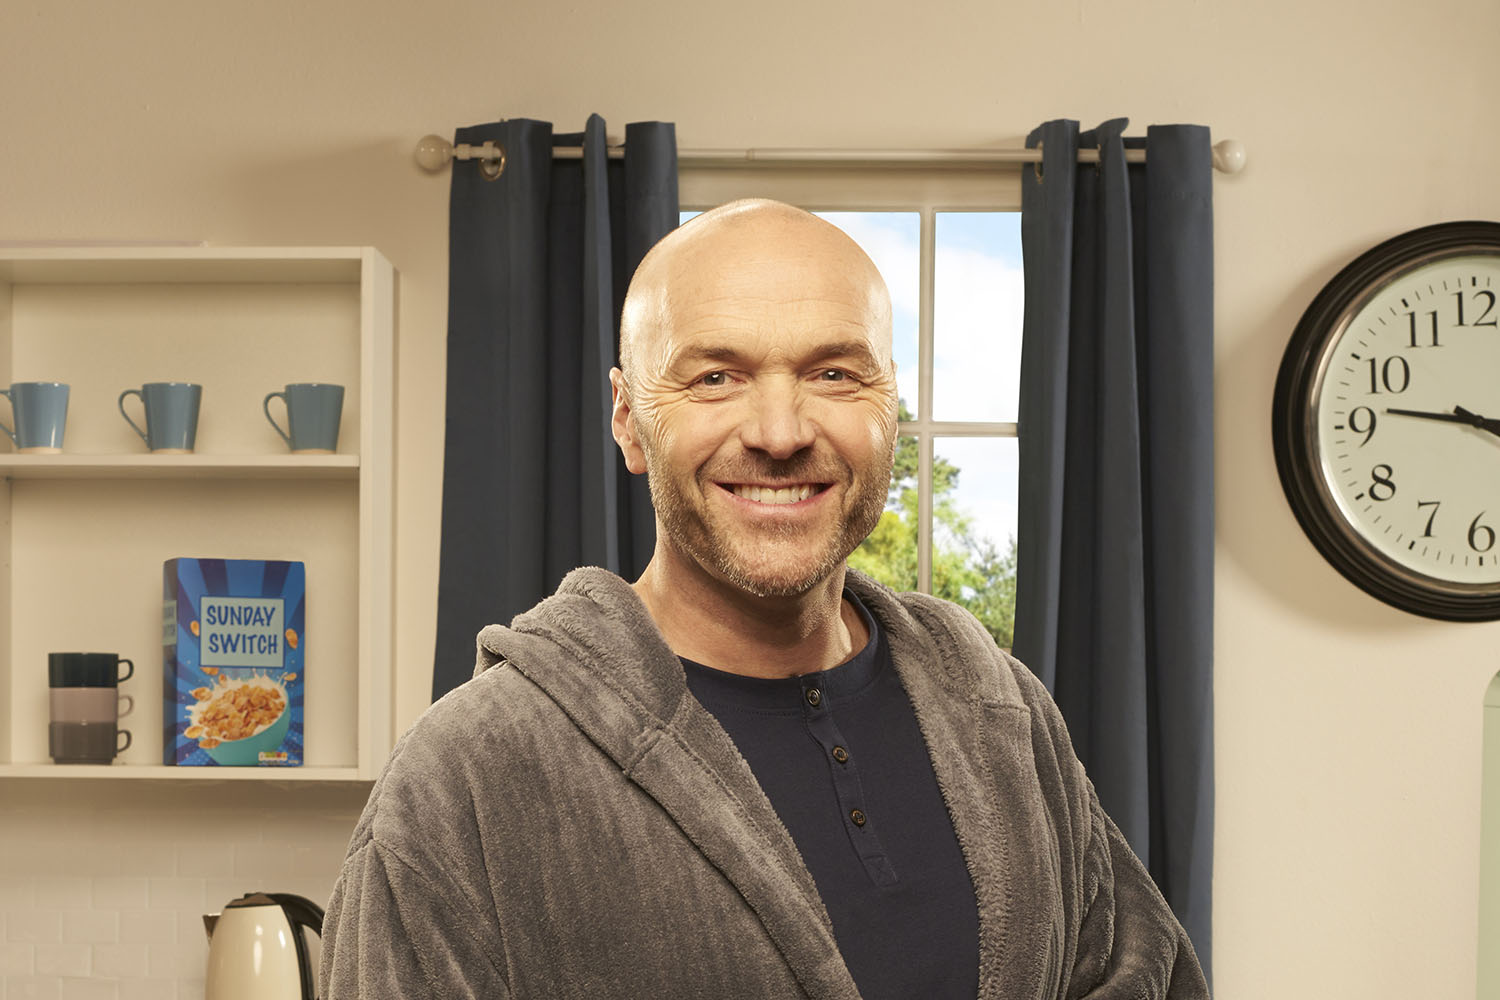 Fans rush to defend Simon Rimmer after he responds to troll